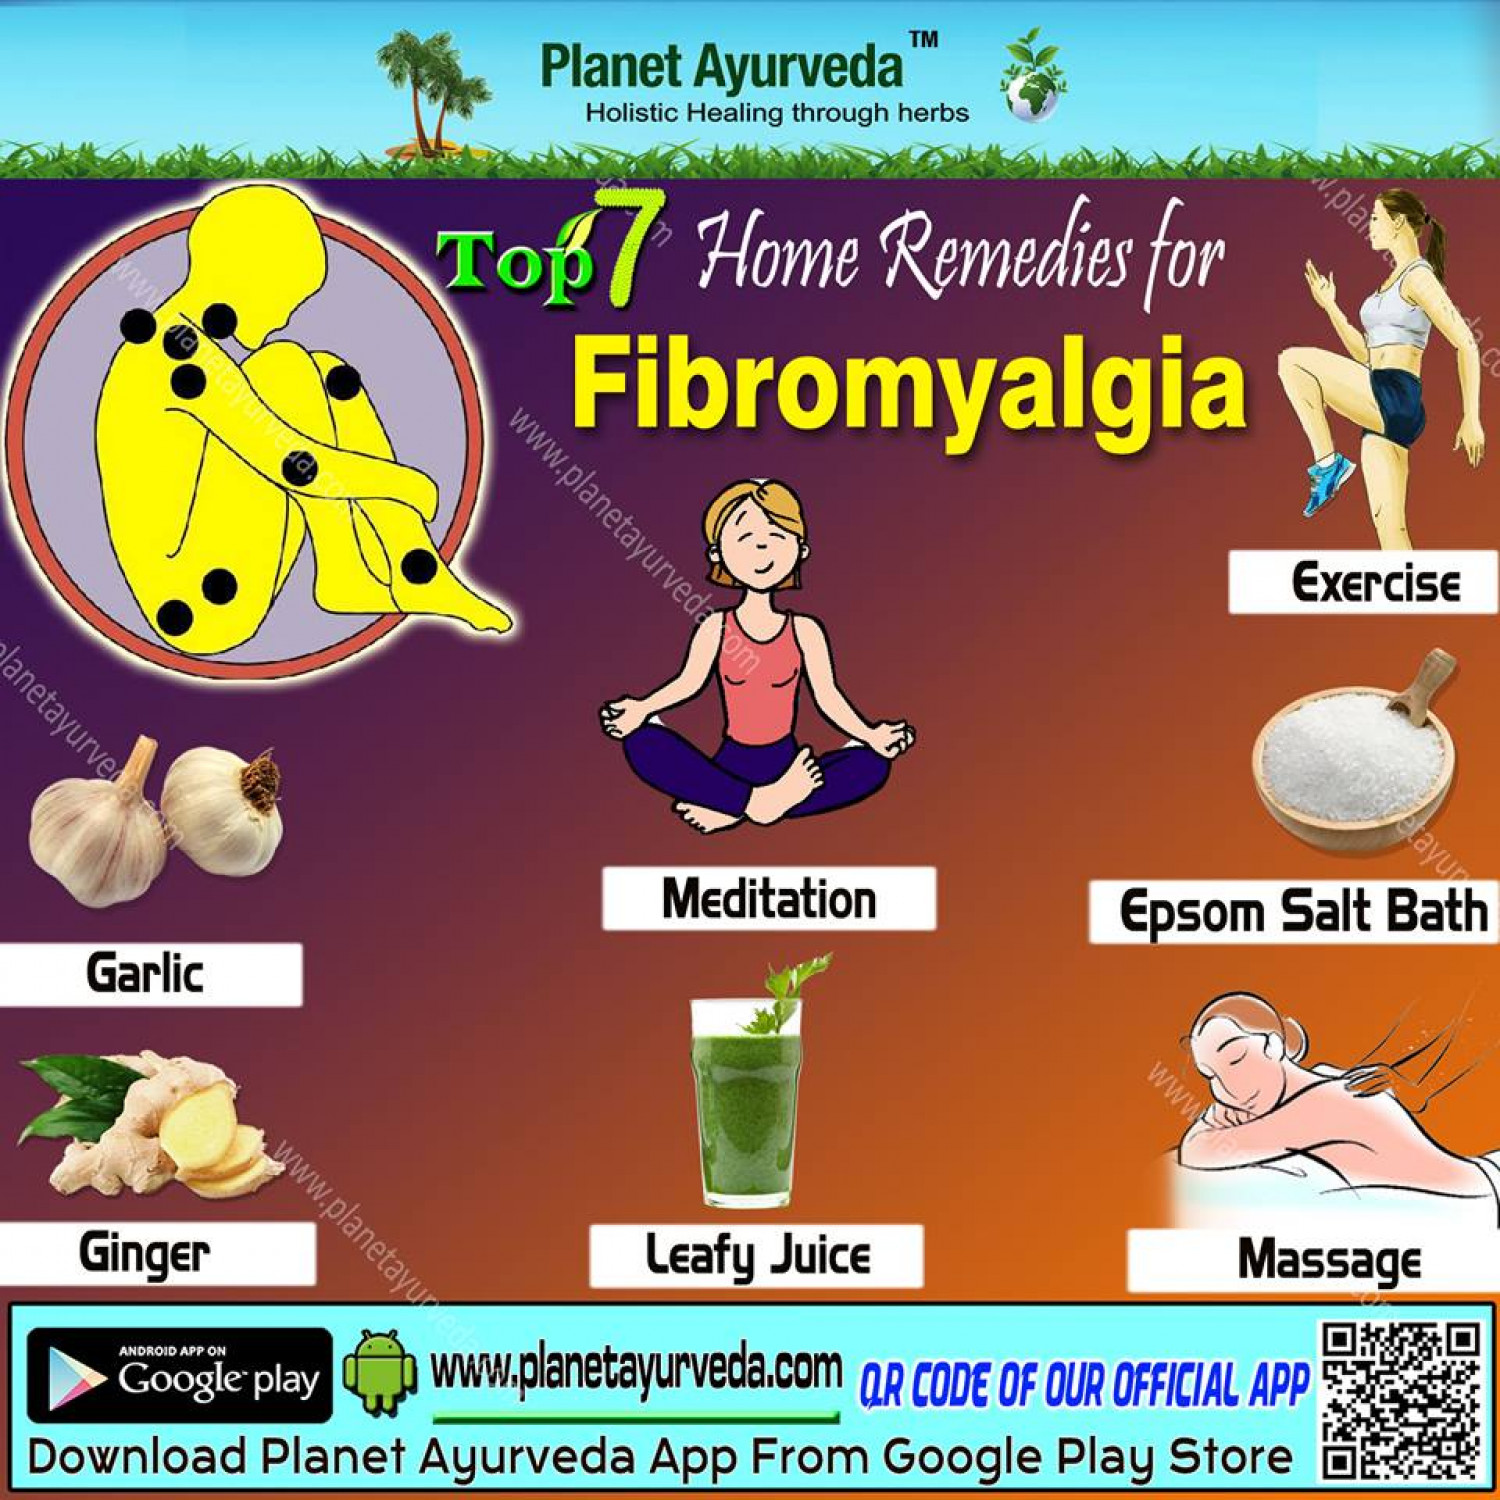 Top 7 Home Remedies for Fibromyalgia Infographic